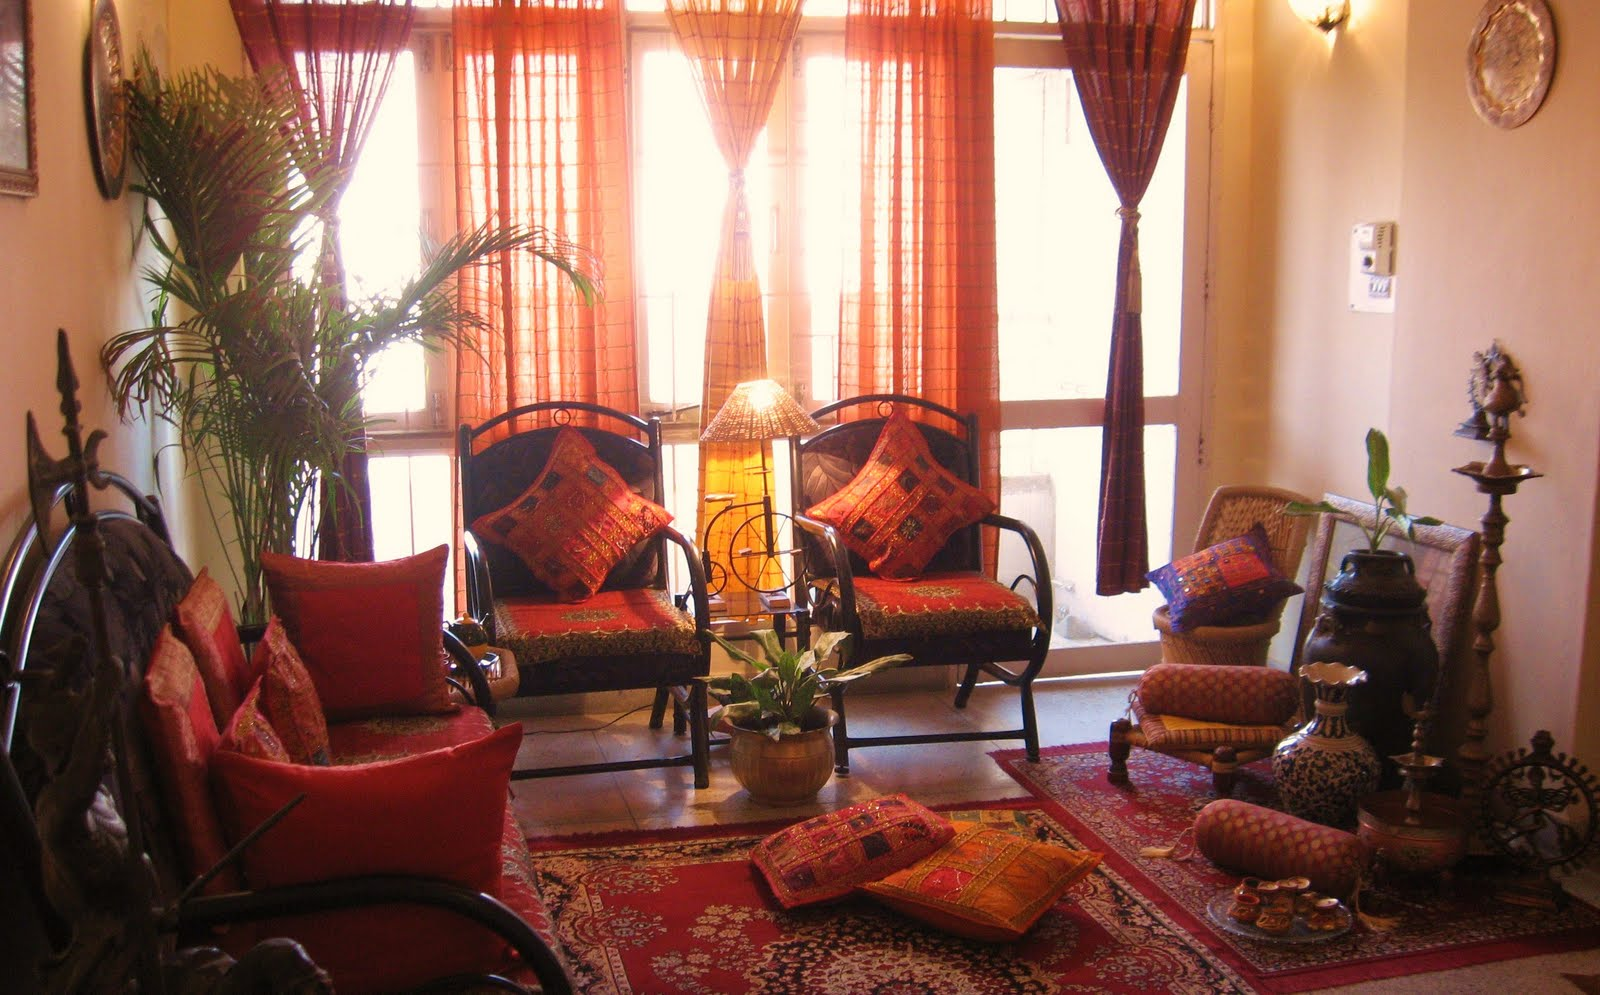 Warm Colors, House Design, Decor Style, Decor Ideas, Home ...